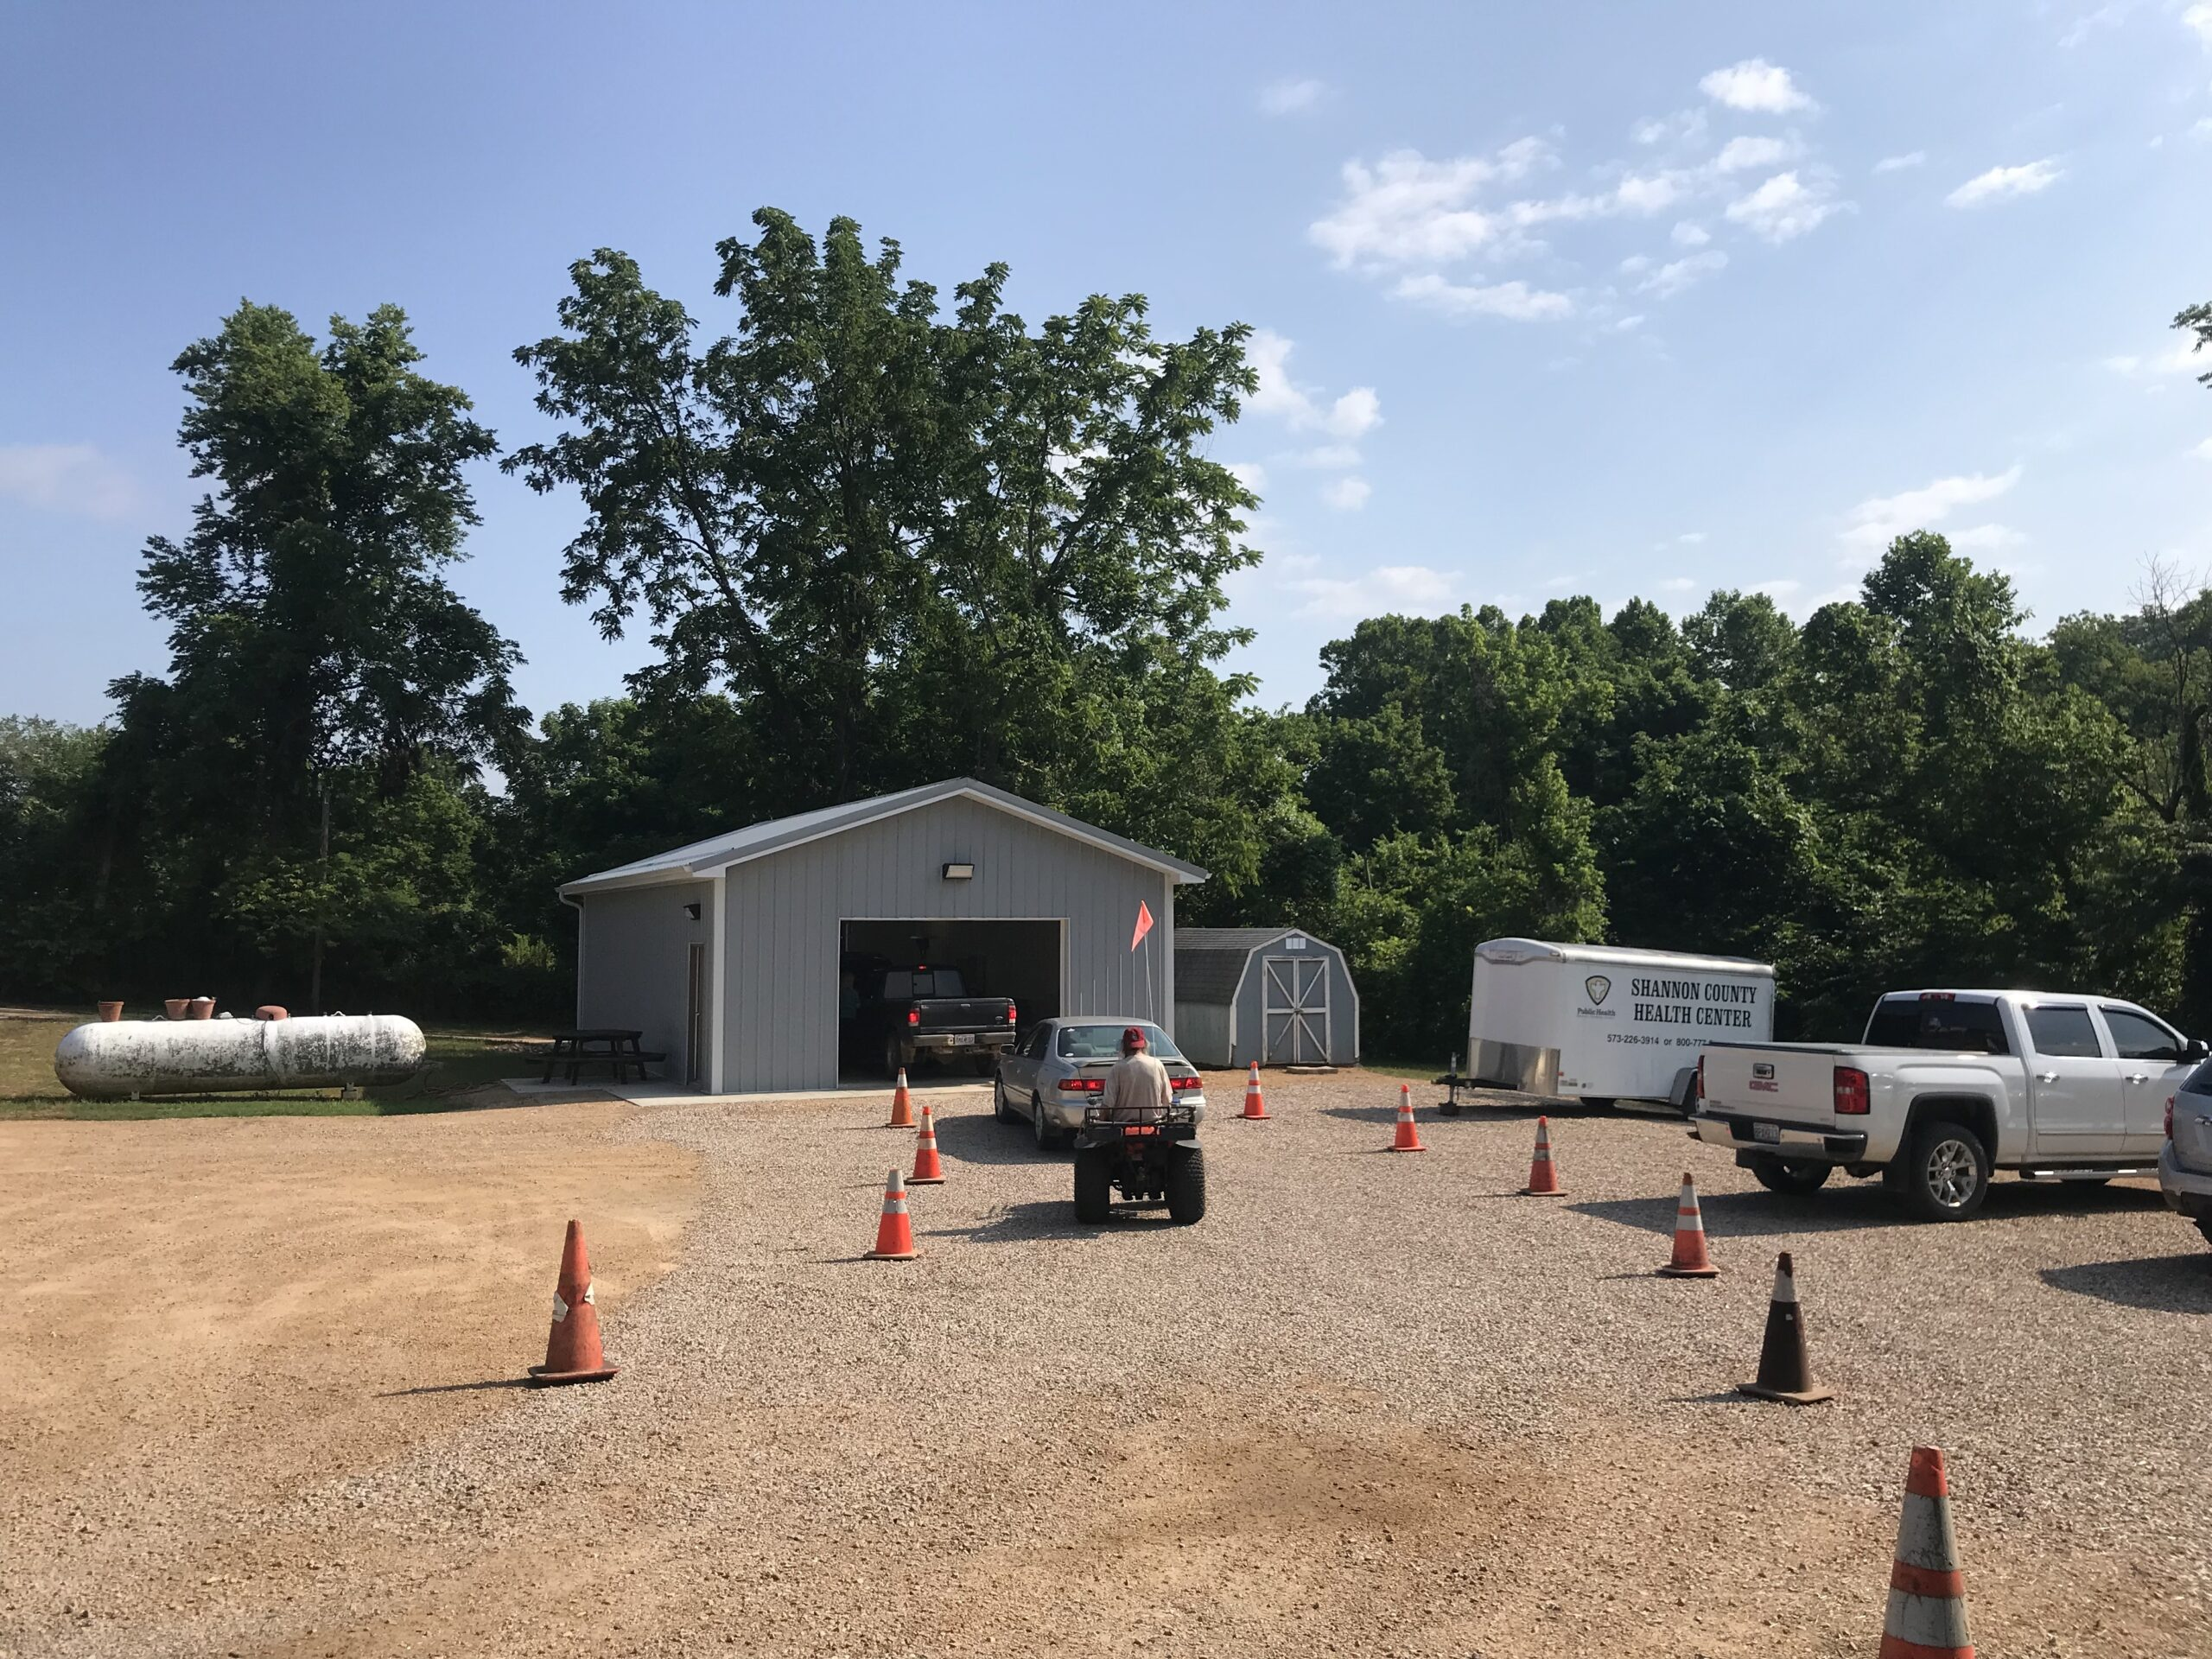 Shannon County vaccination clinic drive-through